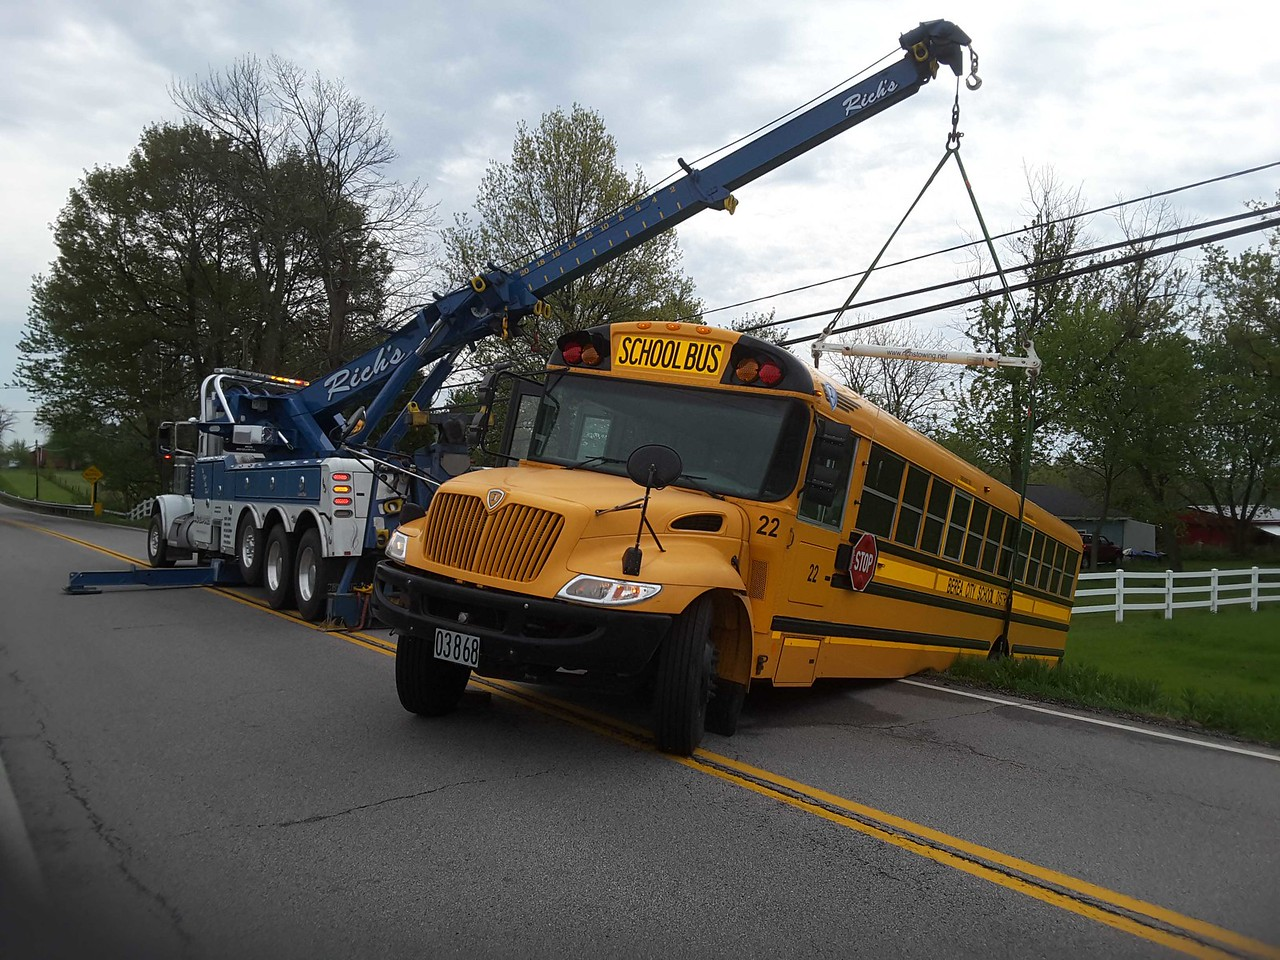 PHOTO PROVIDED/ COURTESY OF BOB SCHMIDT A school bus driver misjudged distance when backing up on Greenwich Rd. in Seville Tuesday morning.